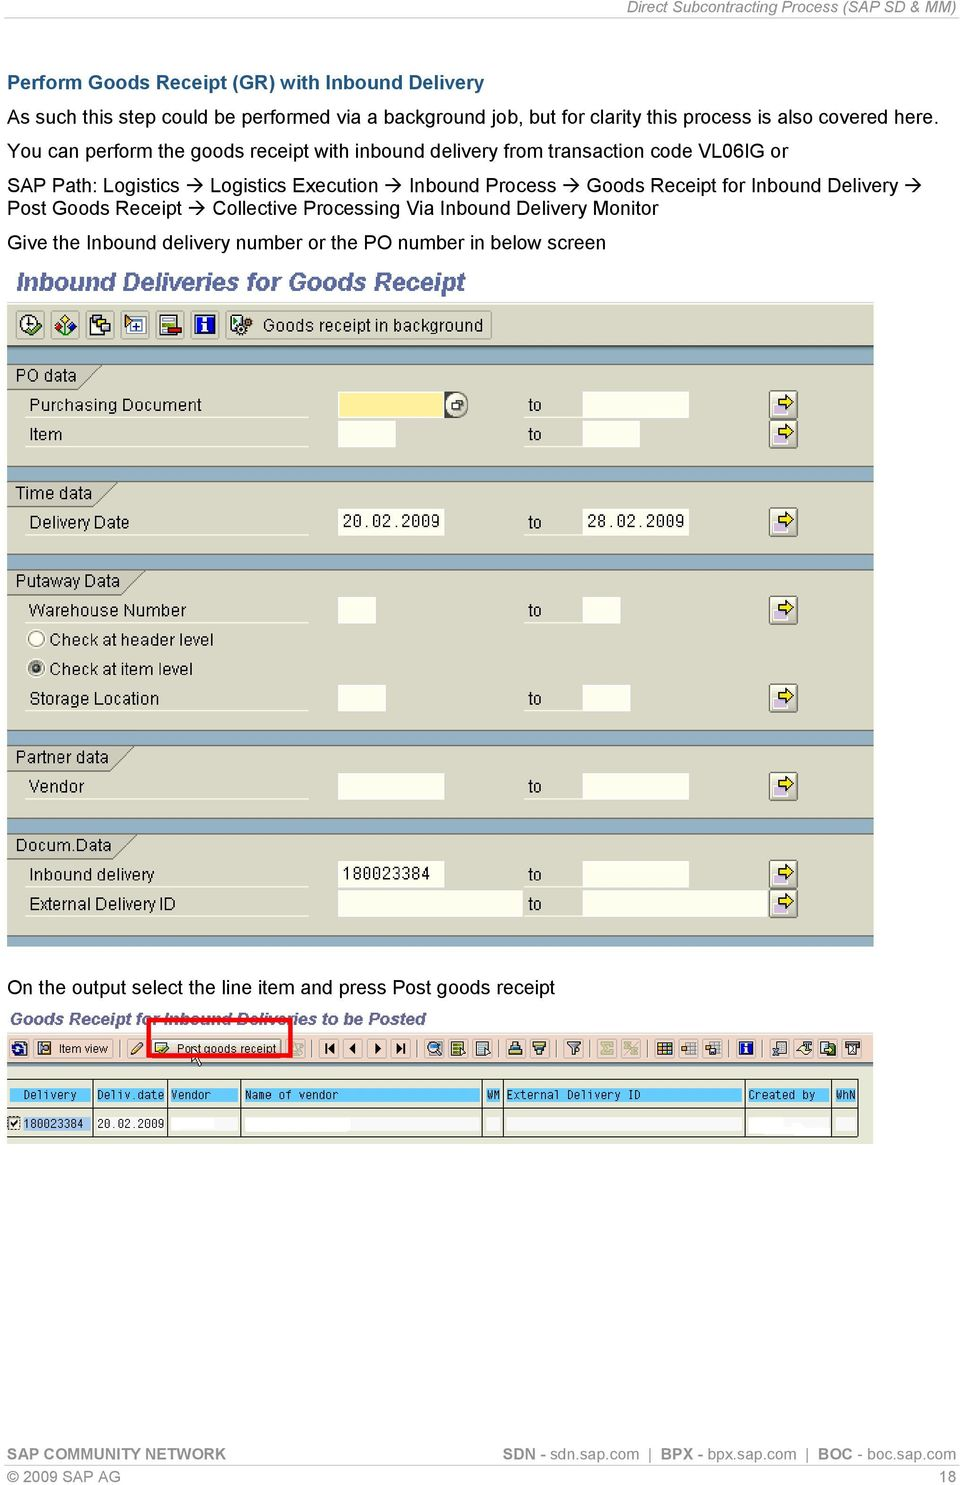 You can perform the goods receipt with inbound delivery from transaction  code VL06IG or SAP Path